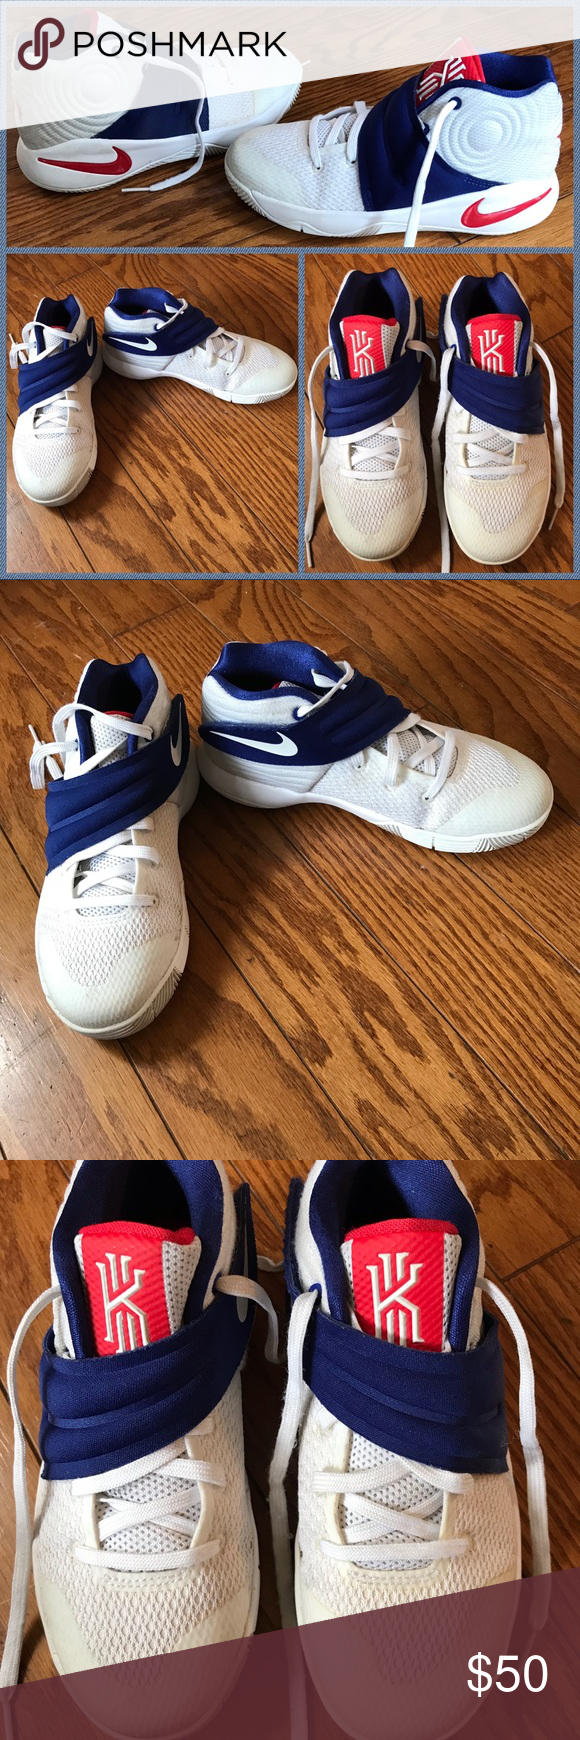 hot sales d2af3 9e87e Nike Kyrie Irving 2, 4th of July, Boys size 1y Excellent condition, Nike  Kyrie 2, White red deep royal blue. 4th of July edition. Shows very little  wear and ...